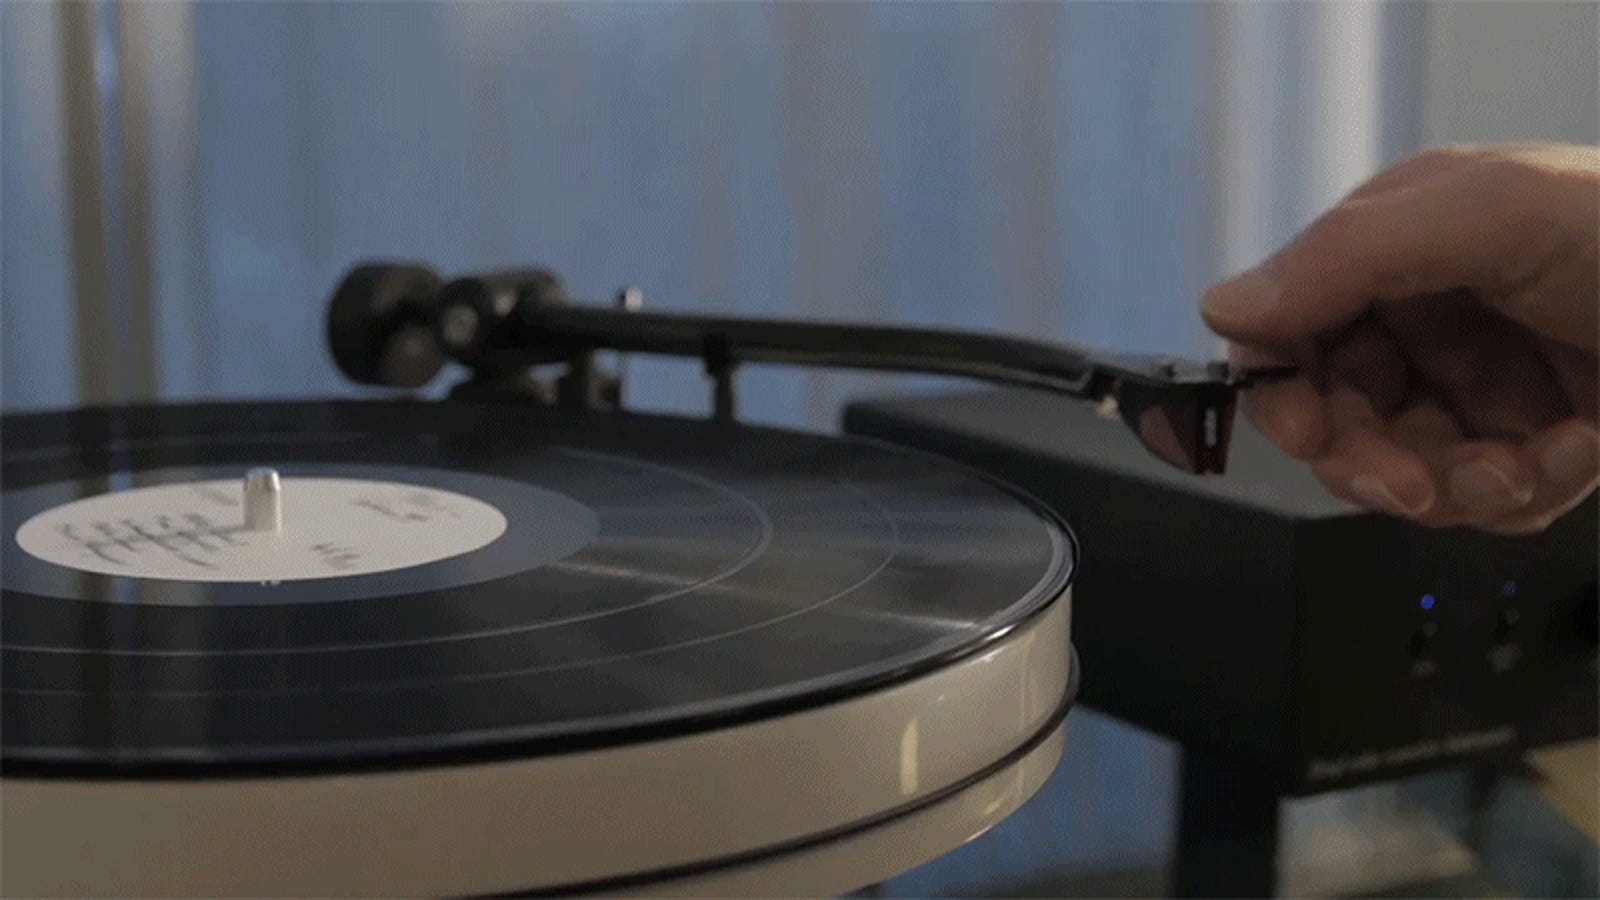 If You Hate Your Eyes, You Can Now Watch Video Recorded On a Vinyl Record